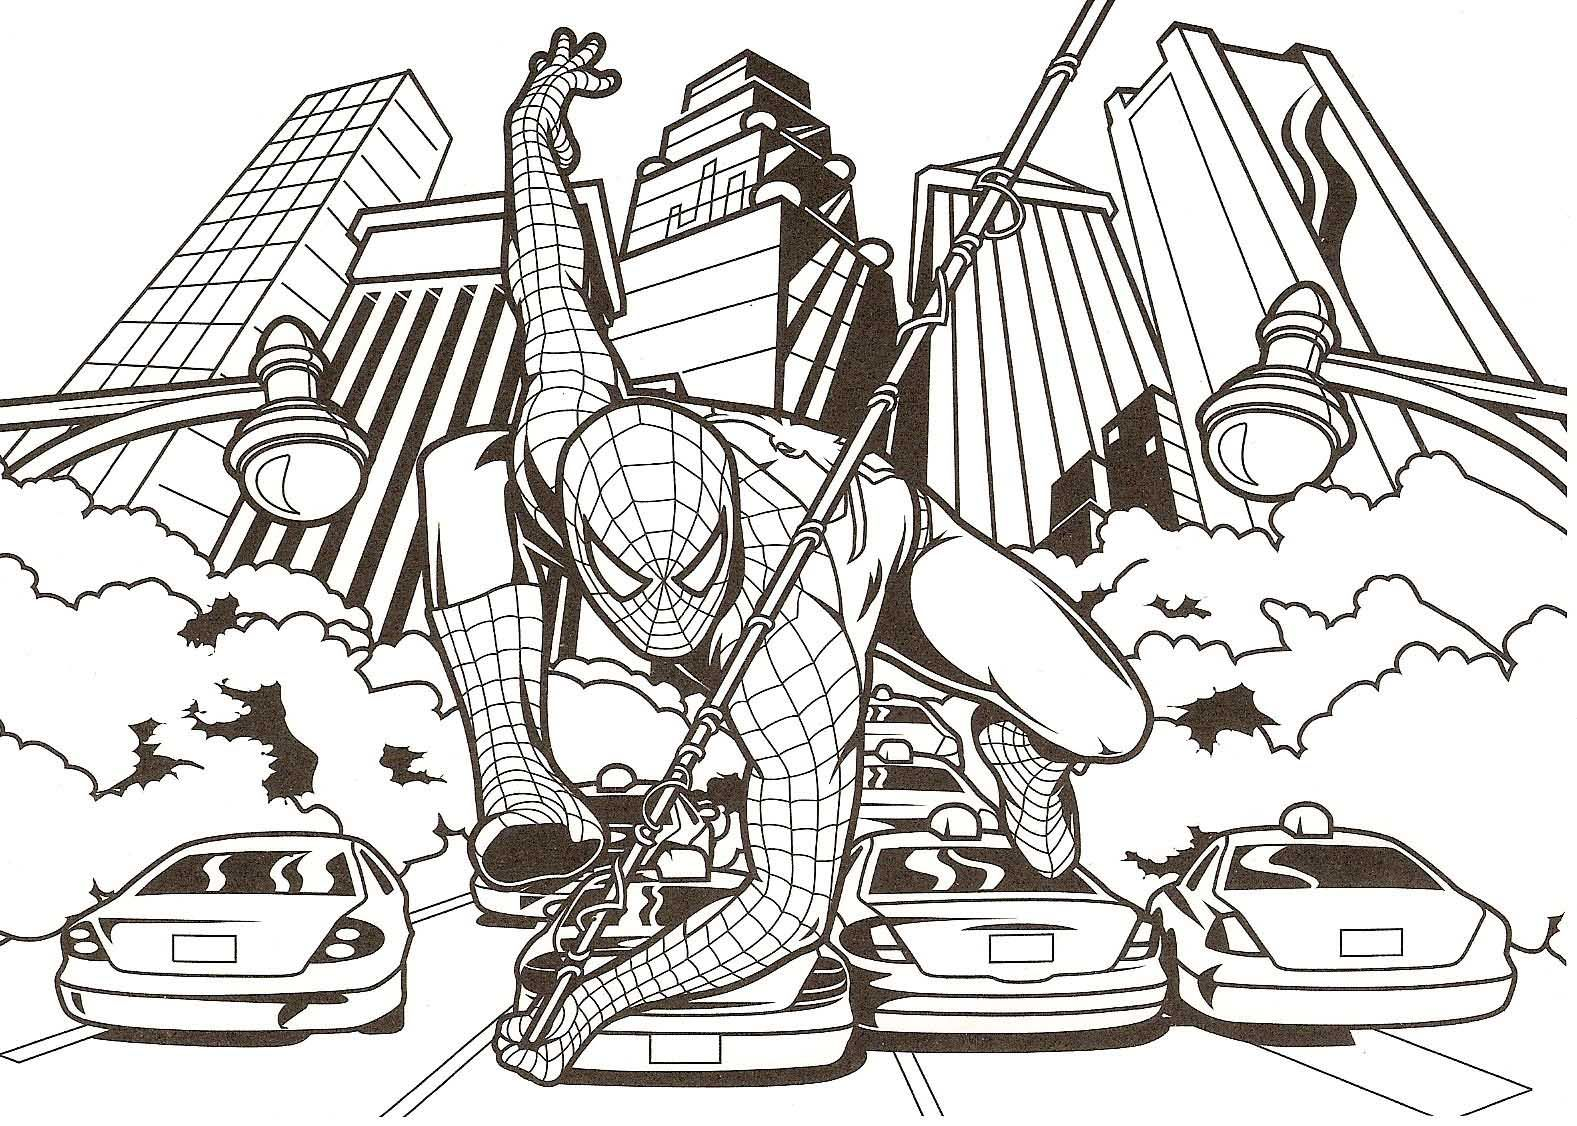 colour pages online : Amazing Spiderman Coloring Pages Printable And Coloring Book To Print For Free Find More Coloring Pages Online For Kids And Adults Of Amazing Spiderman